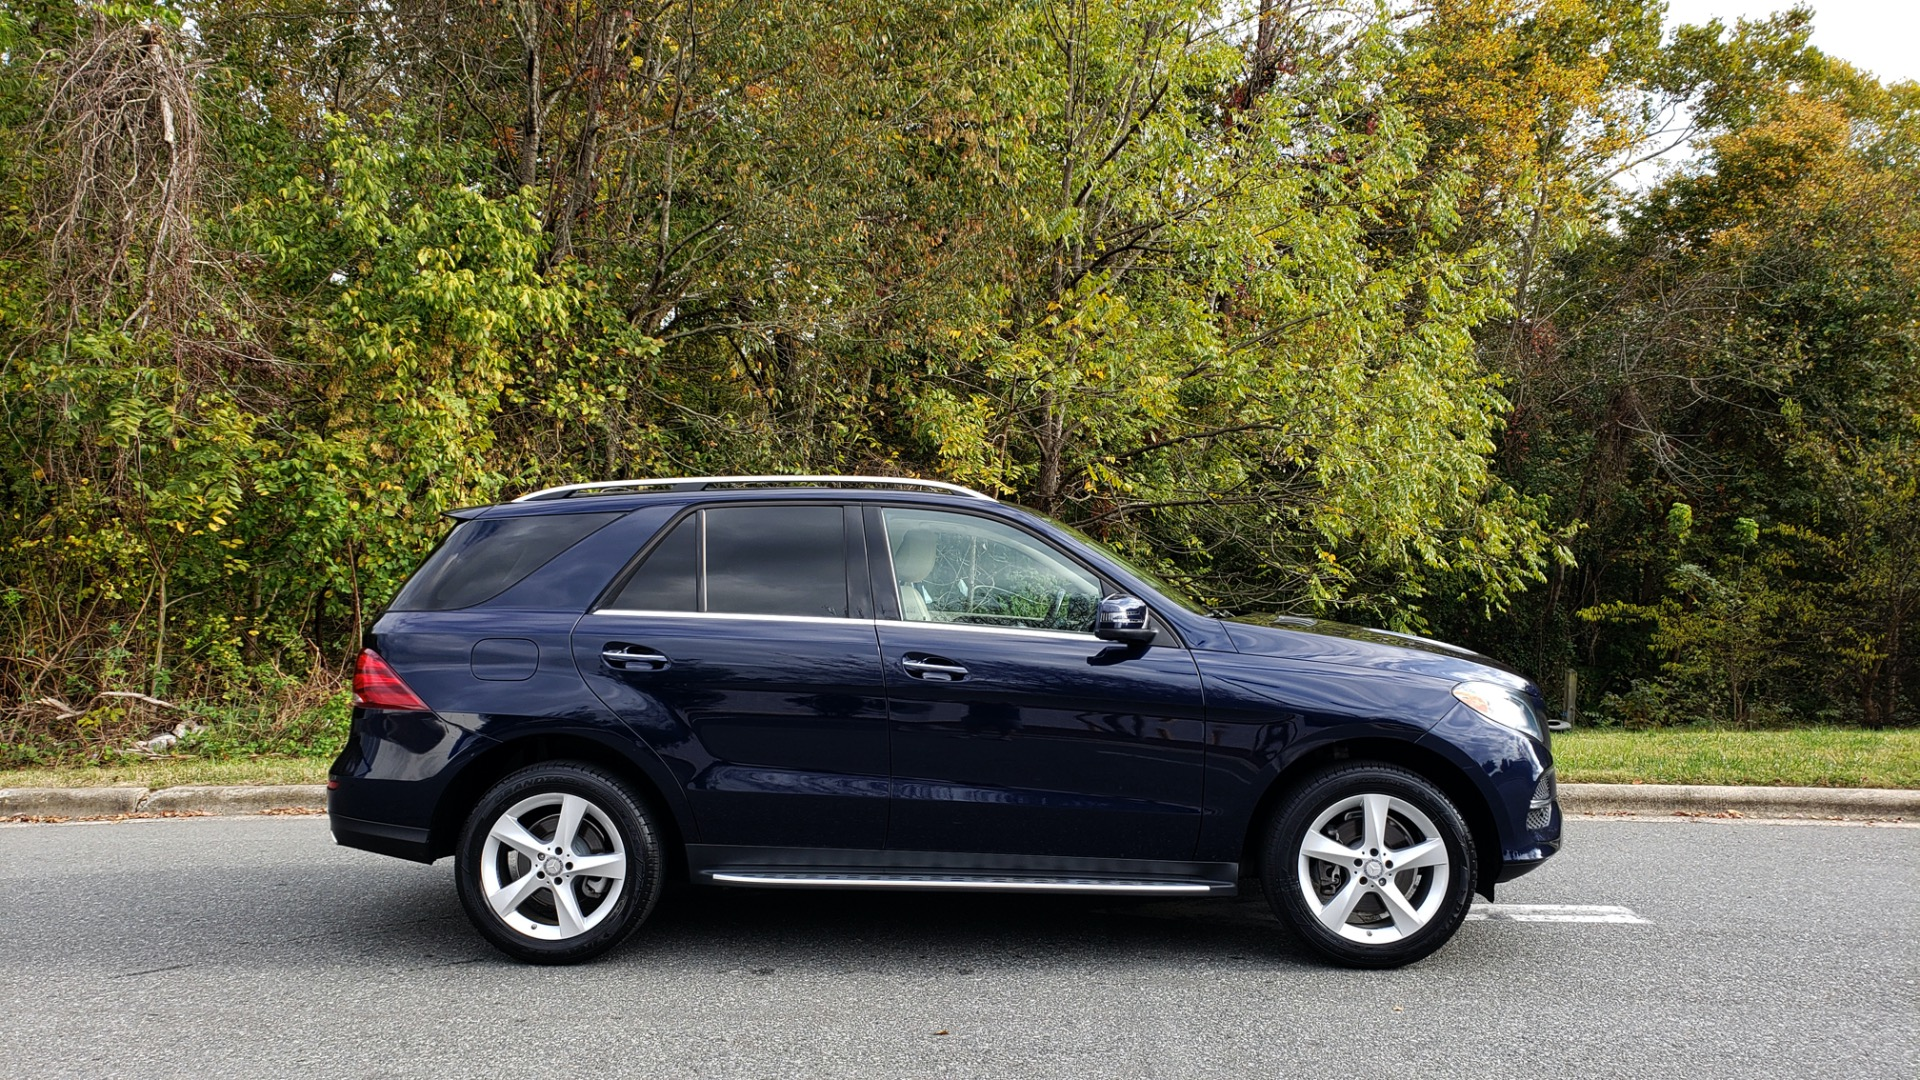 Used 2016 Mercedes-Benz GLE 350 PREMIUM / NAV / SUNROOF / BACK-UP CAMERA / LANE TRACKING for sale Sold at Formula Imports in Charlotte NC 28227 9